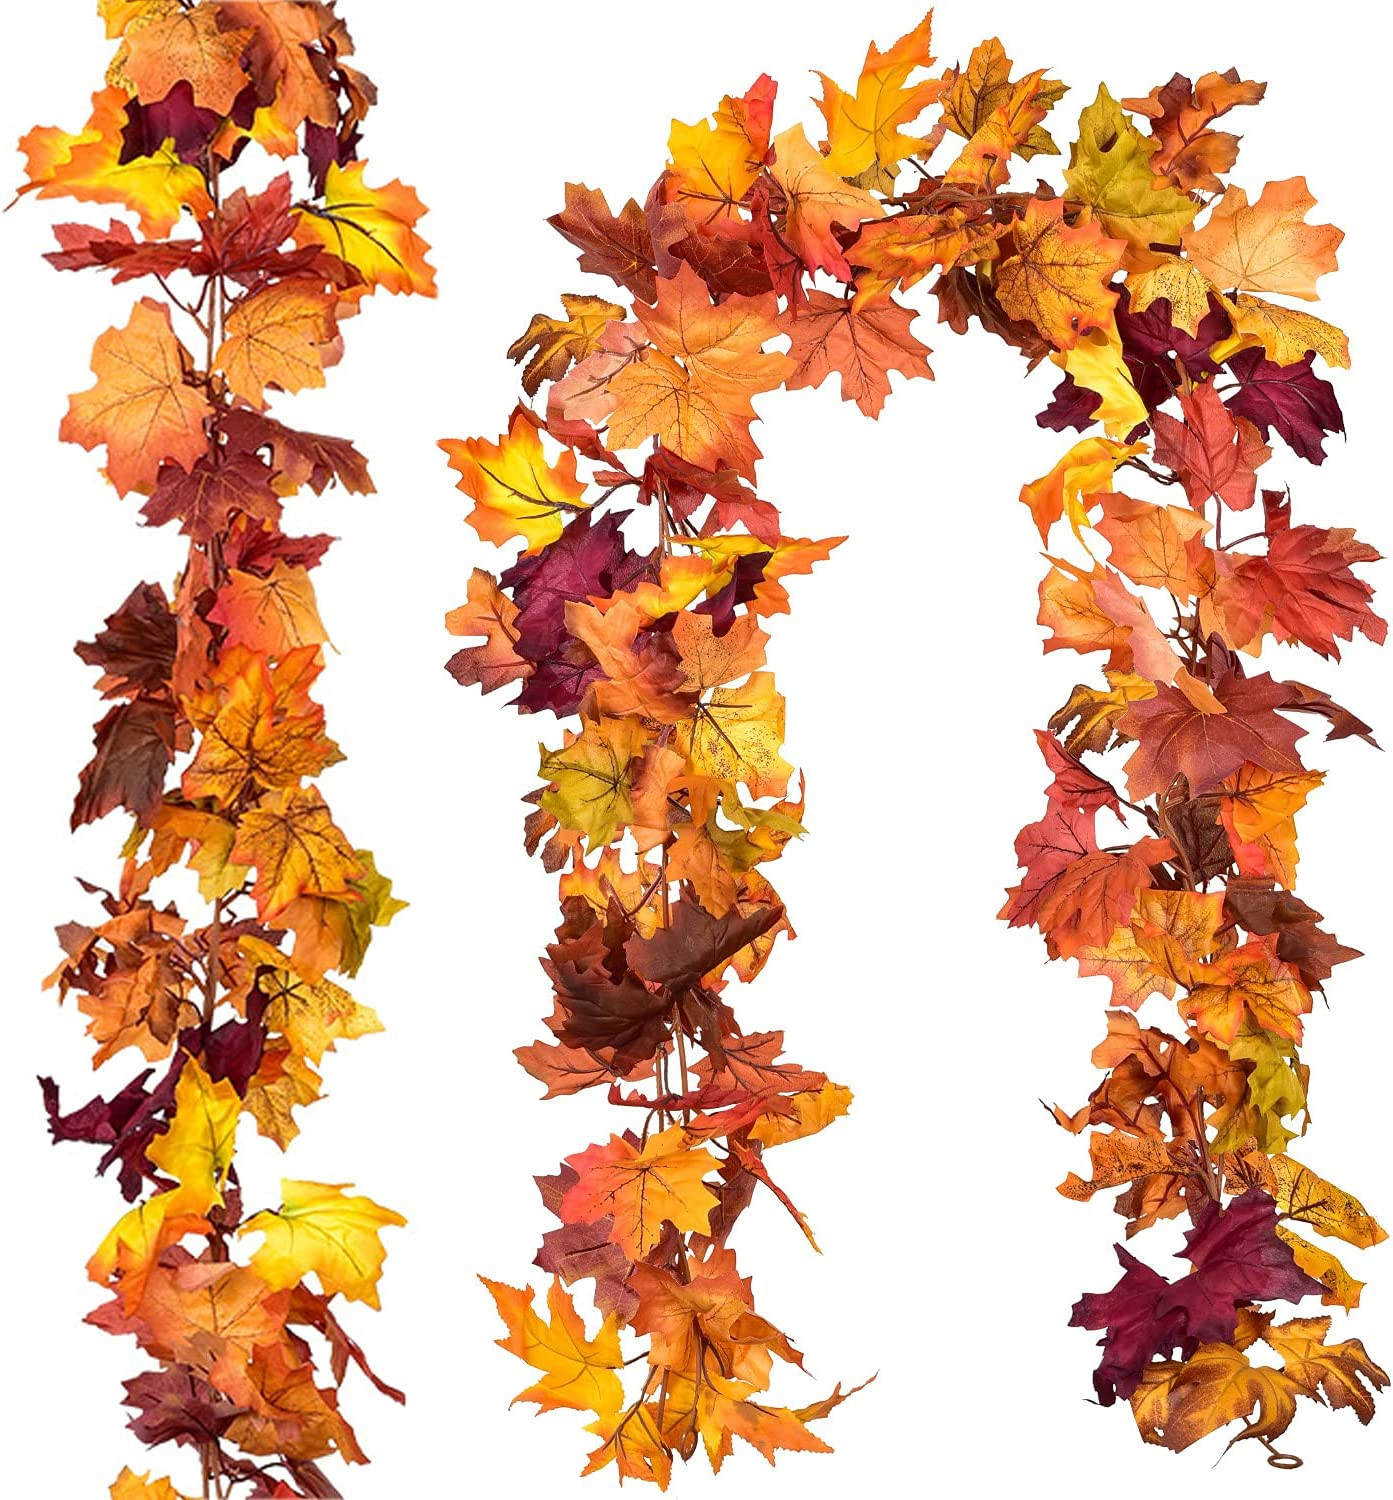 DearHouse 2 Pcs Fall Garland Maple Leaf, 5.9Ft/Piece Hanging Vine Garland Artificial Autumn Foliage Garland Thanksgiving Decor for Home Wedding Fireplace Party Christmas